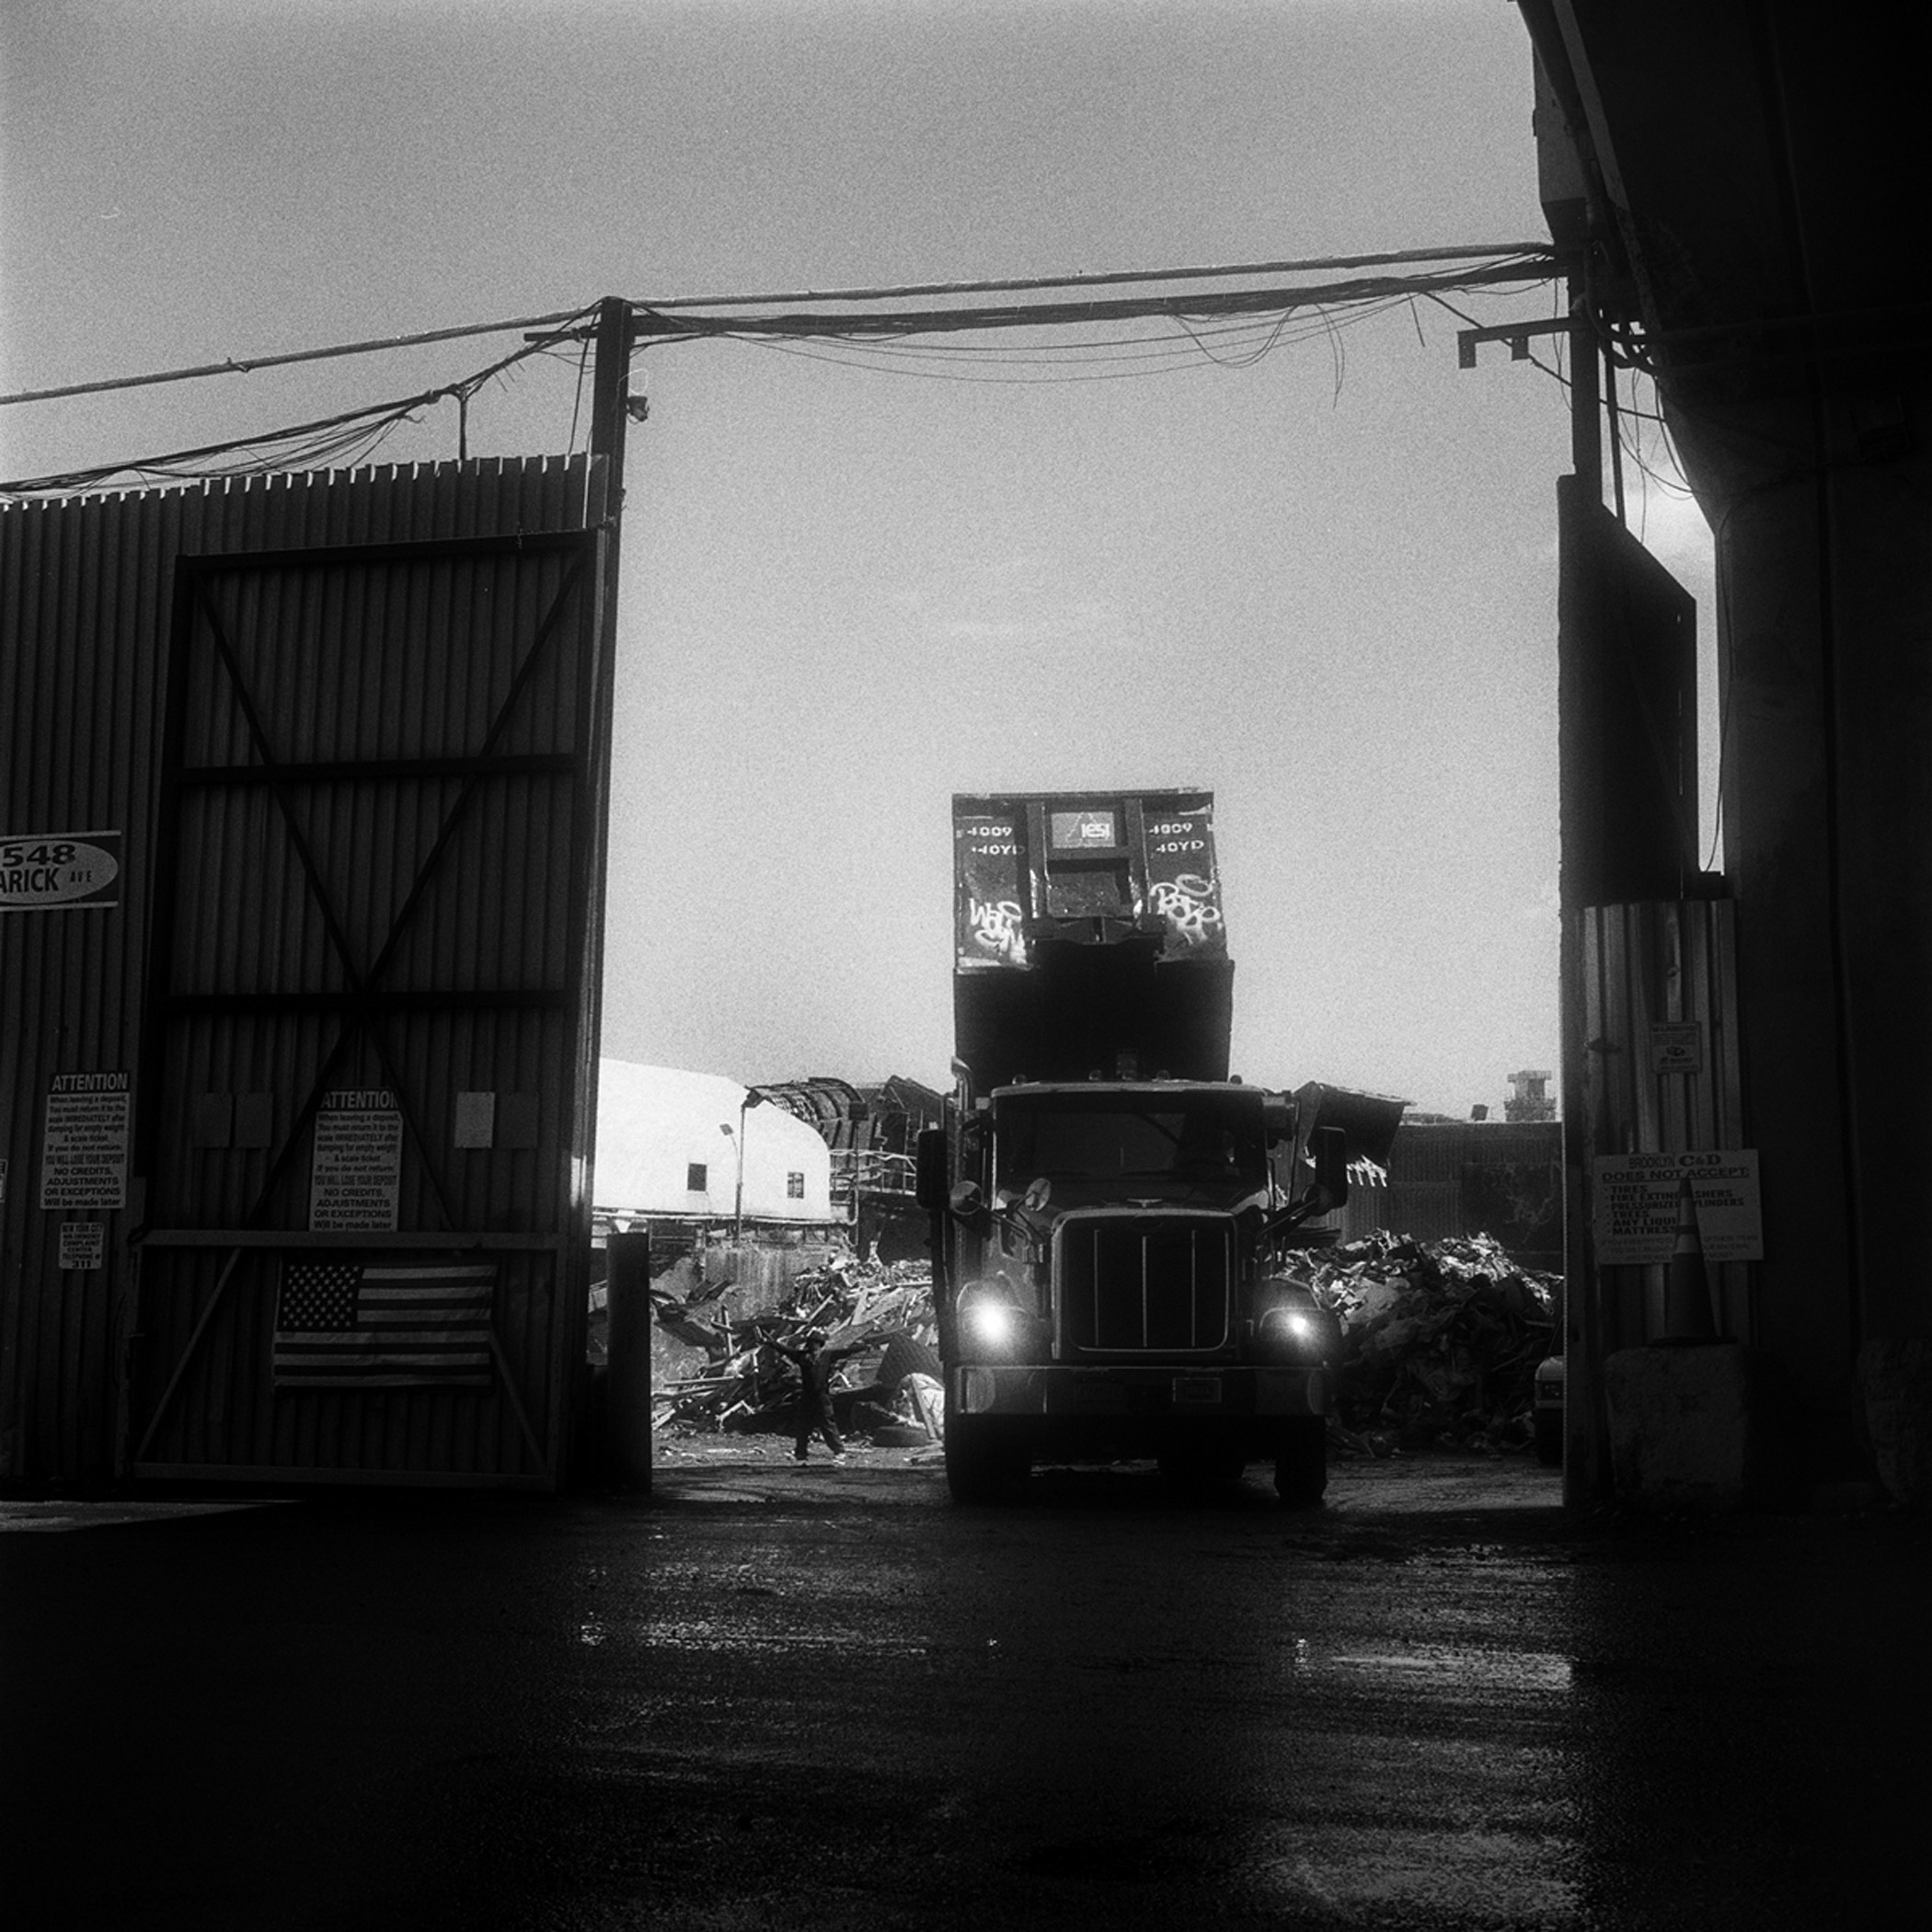 A roll-off truck with its container in the dumping position, as the yard spotter signals to the driver that his container is empty in Greenpoint, Brooklyn, N.Y., September 2015.